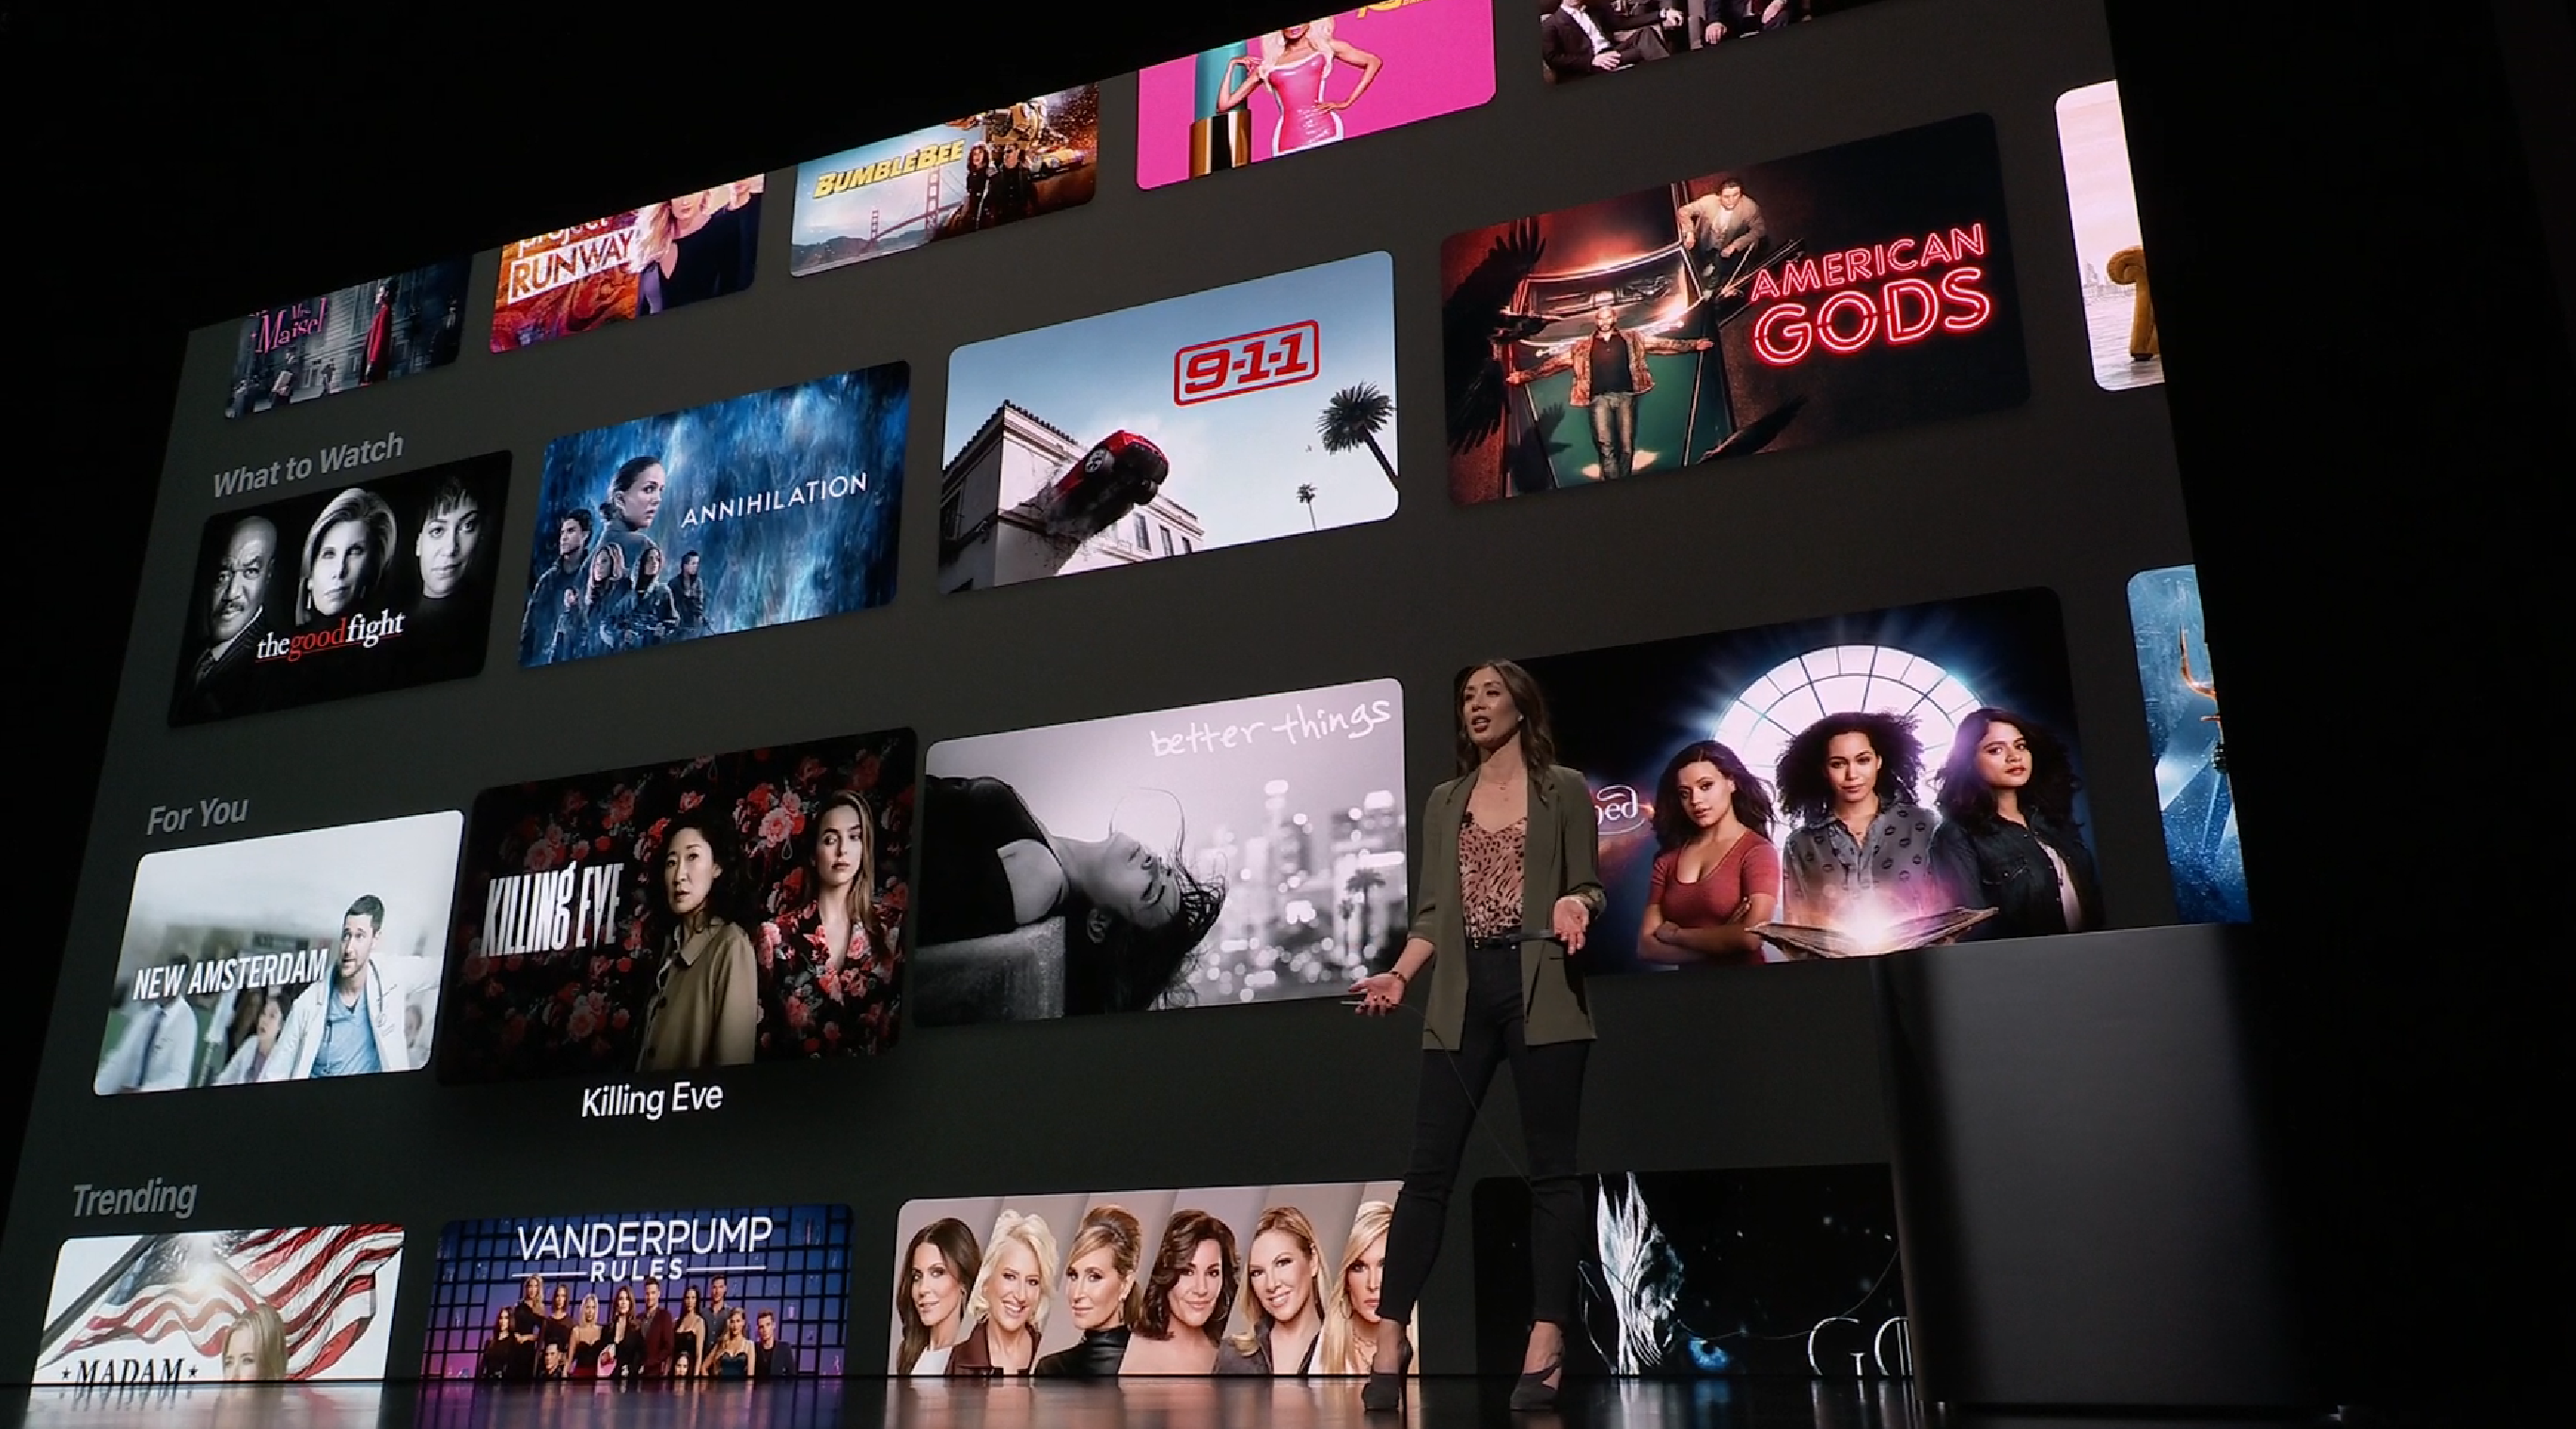 Apple TV App: Latest Updates, Features, and Changes